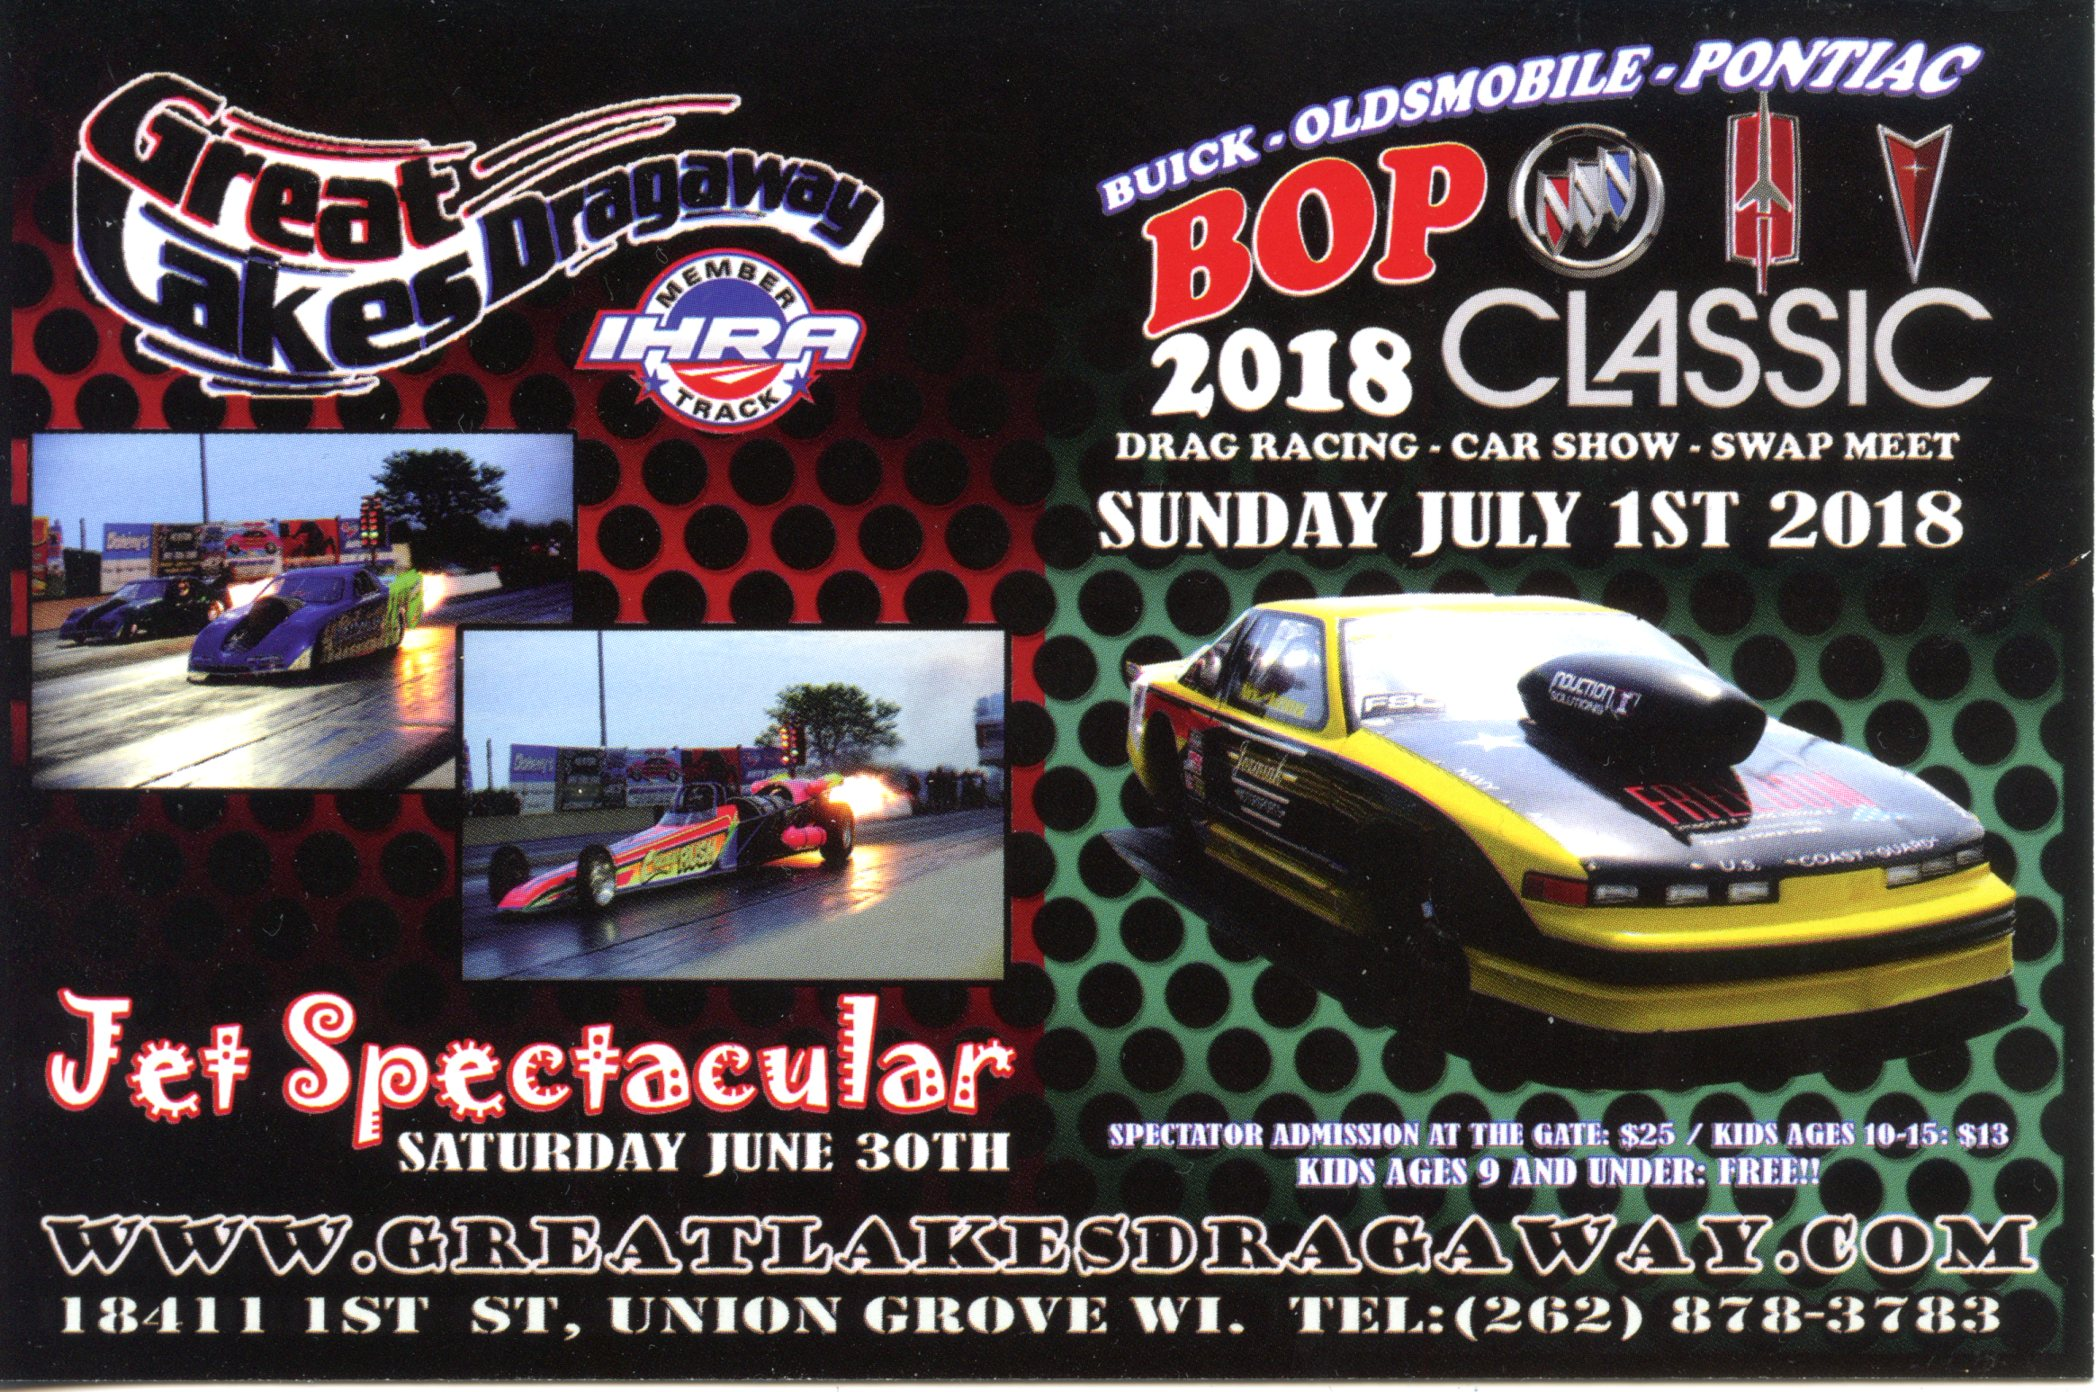 BOP 2018 Classic, Great Lakes Dragaway @ Great Lakes Dragaway | Union Grove | Wisconsin | United States